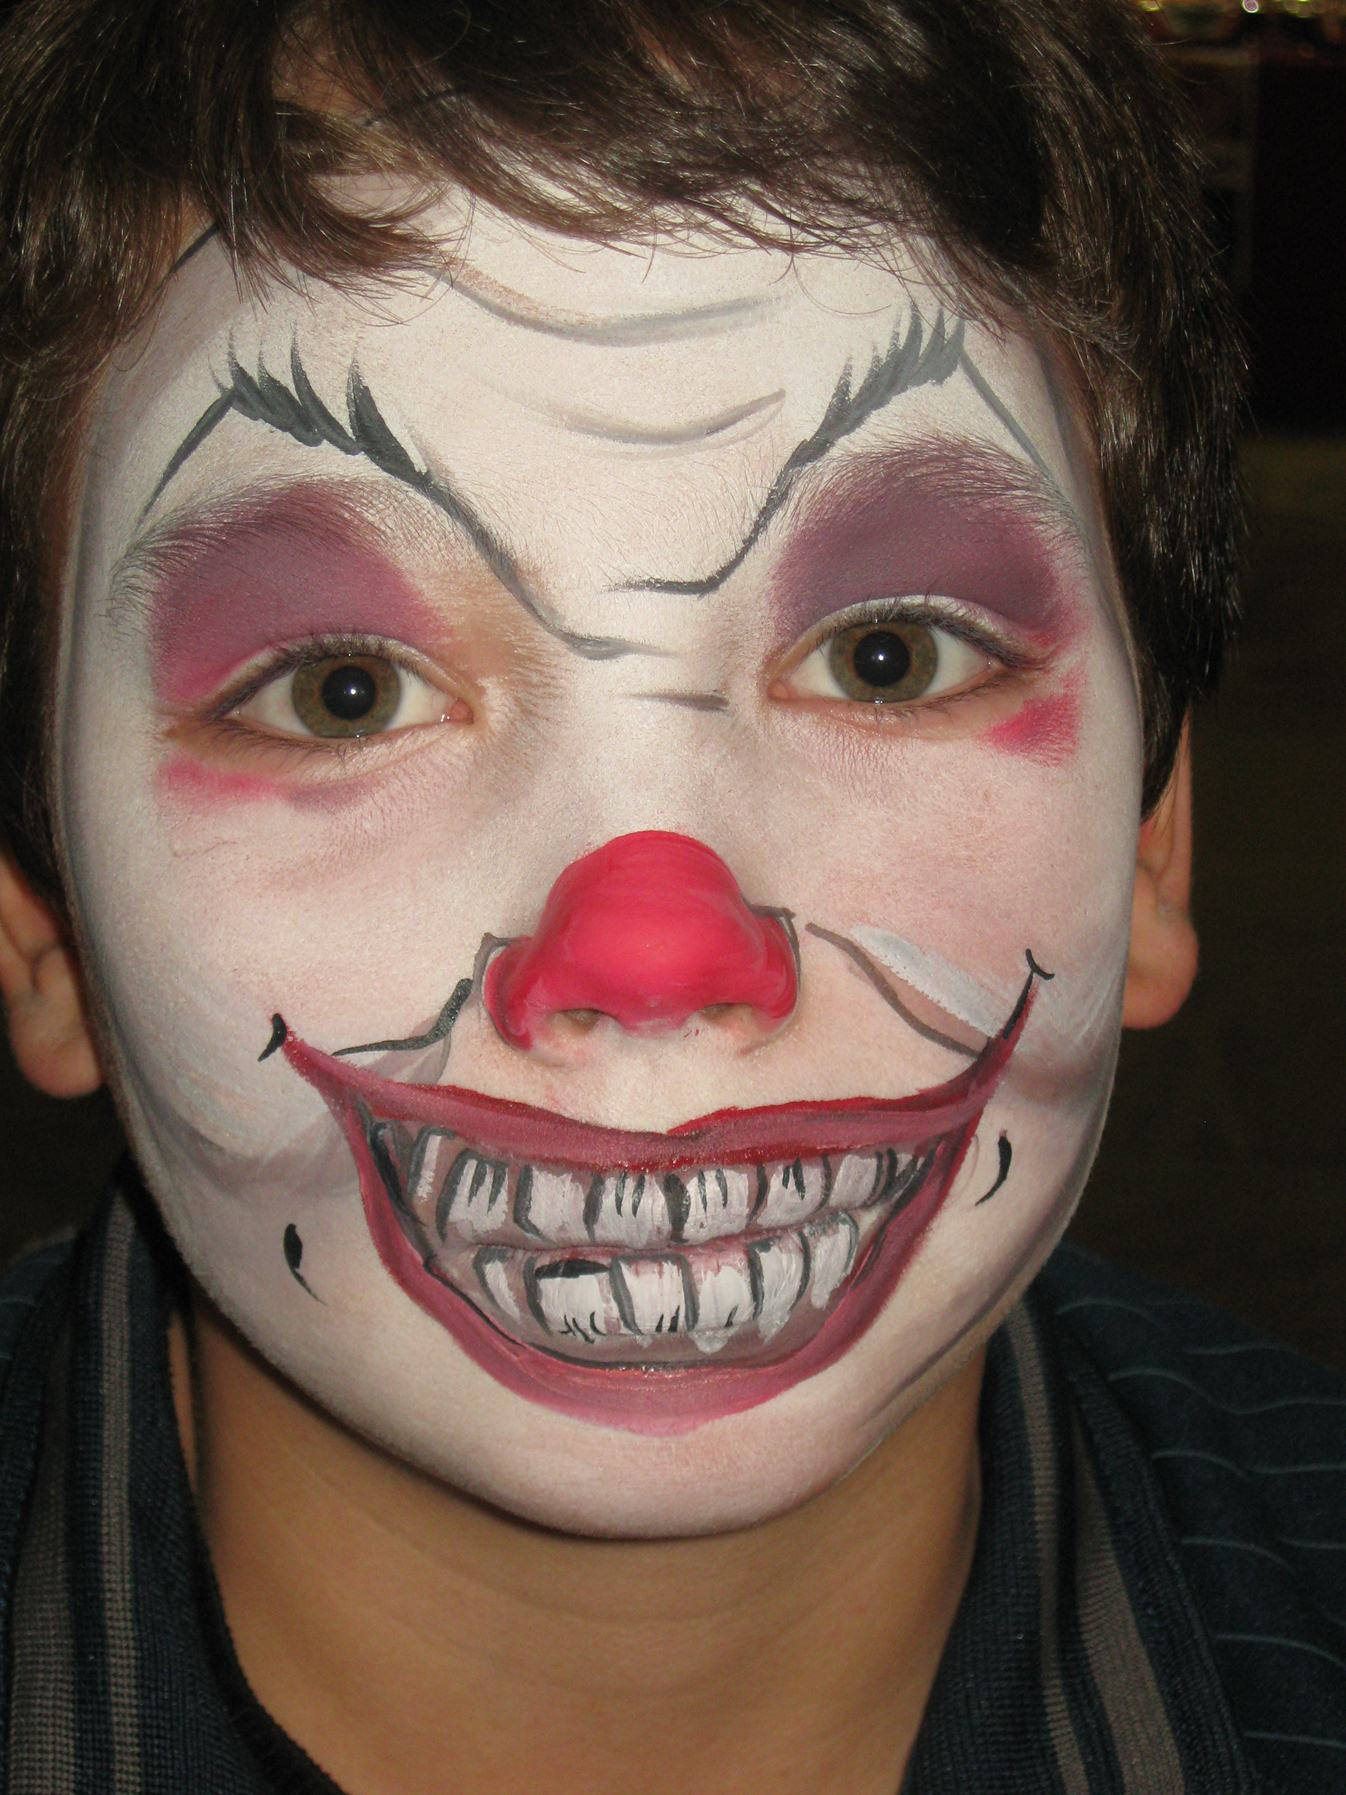 Scary Halloween Face Painting Pictures http://busybeesfacepainting.webs.com/apps/photos/photo?photoID=105226396